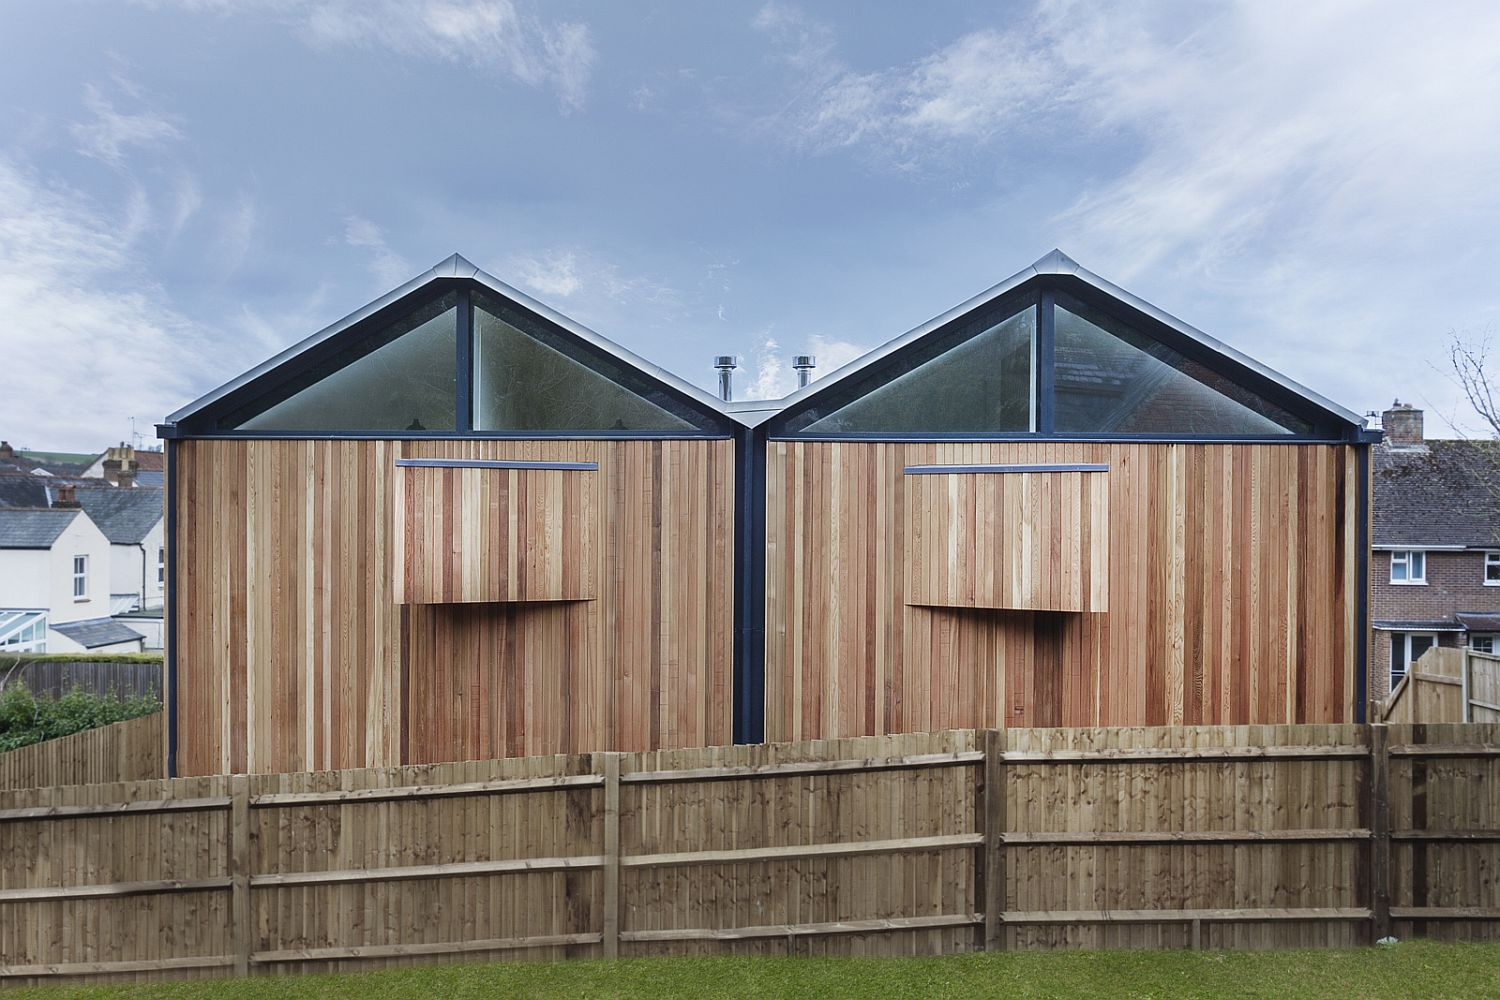 The Cedar Lodges in WInchester, UK with gabled roofs and wood exterior